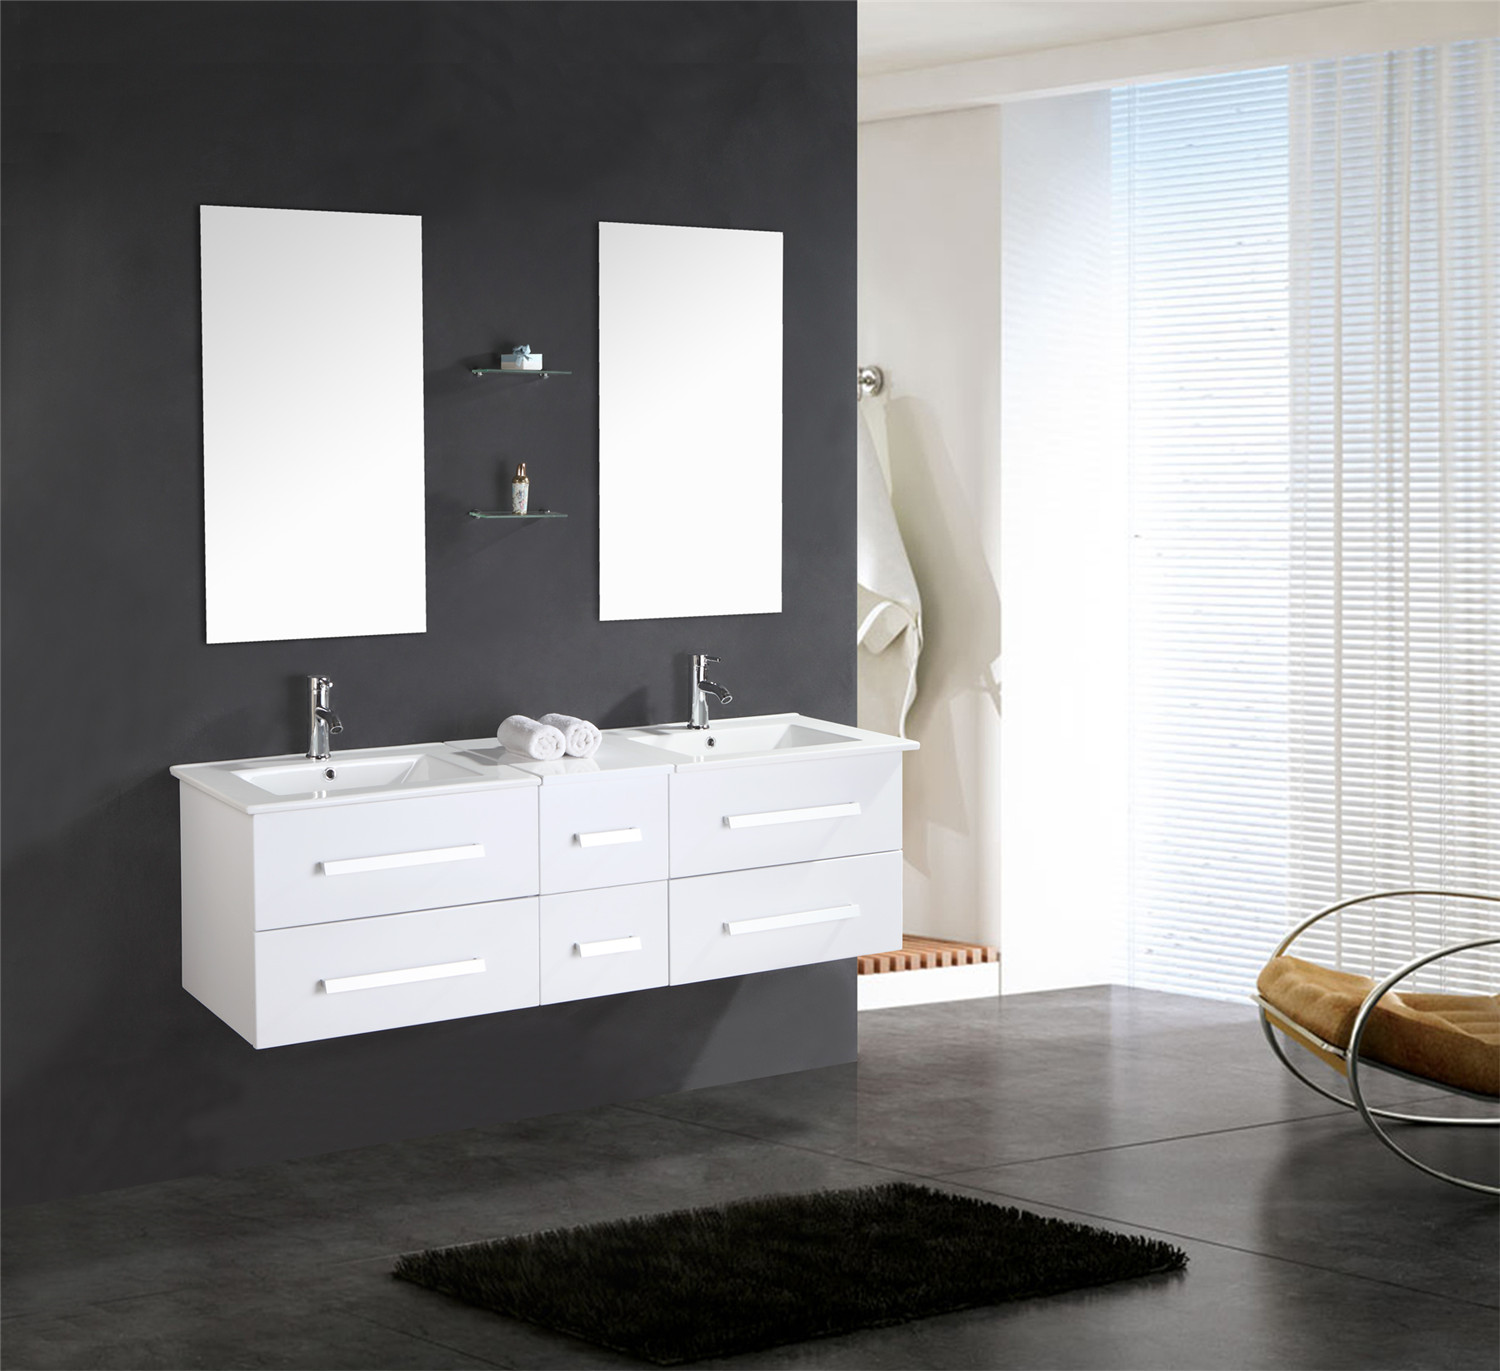 meuble salle de bain 150 cm blanc set vasque robinetterie white rome ensemble ebay. Black Bedroom Furniture Sets. Home Design Ideas